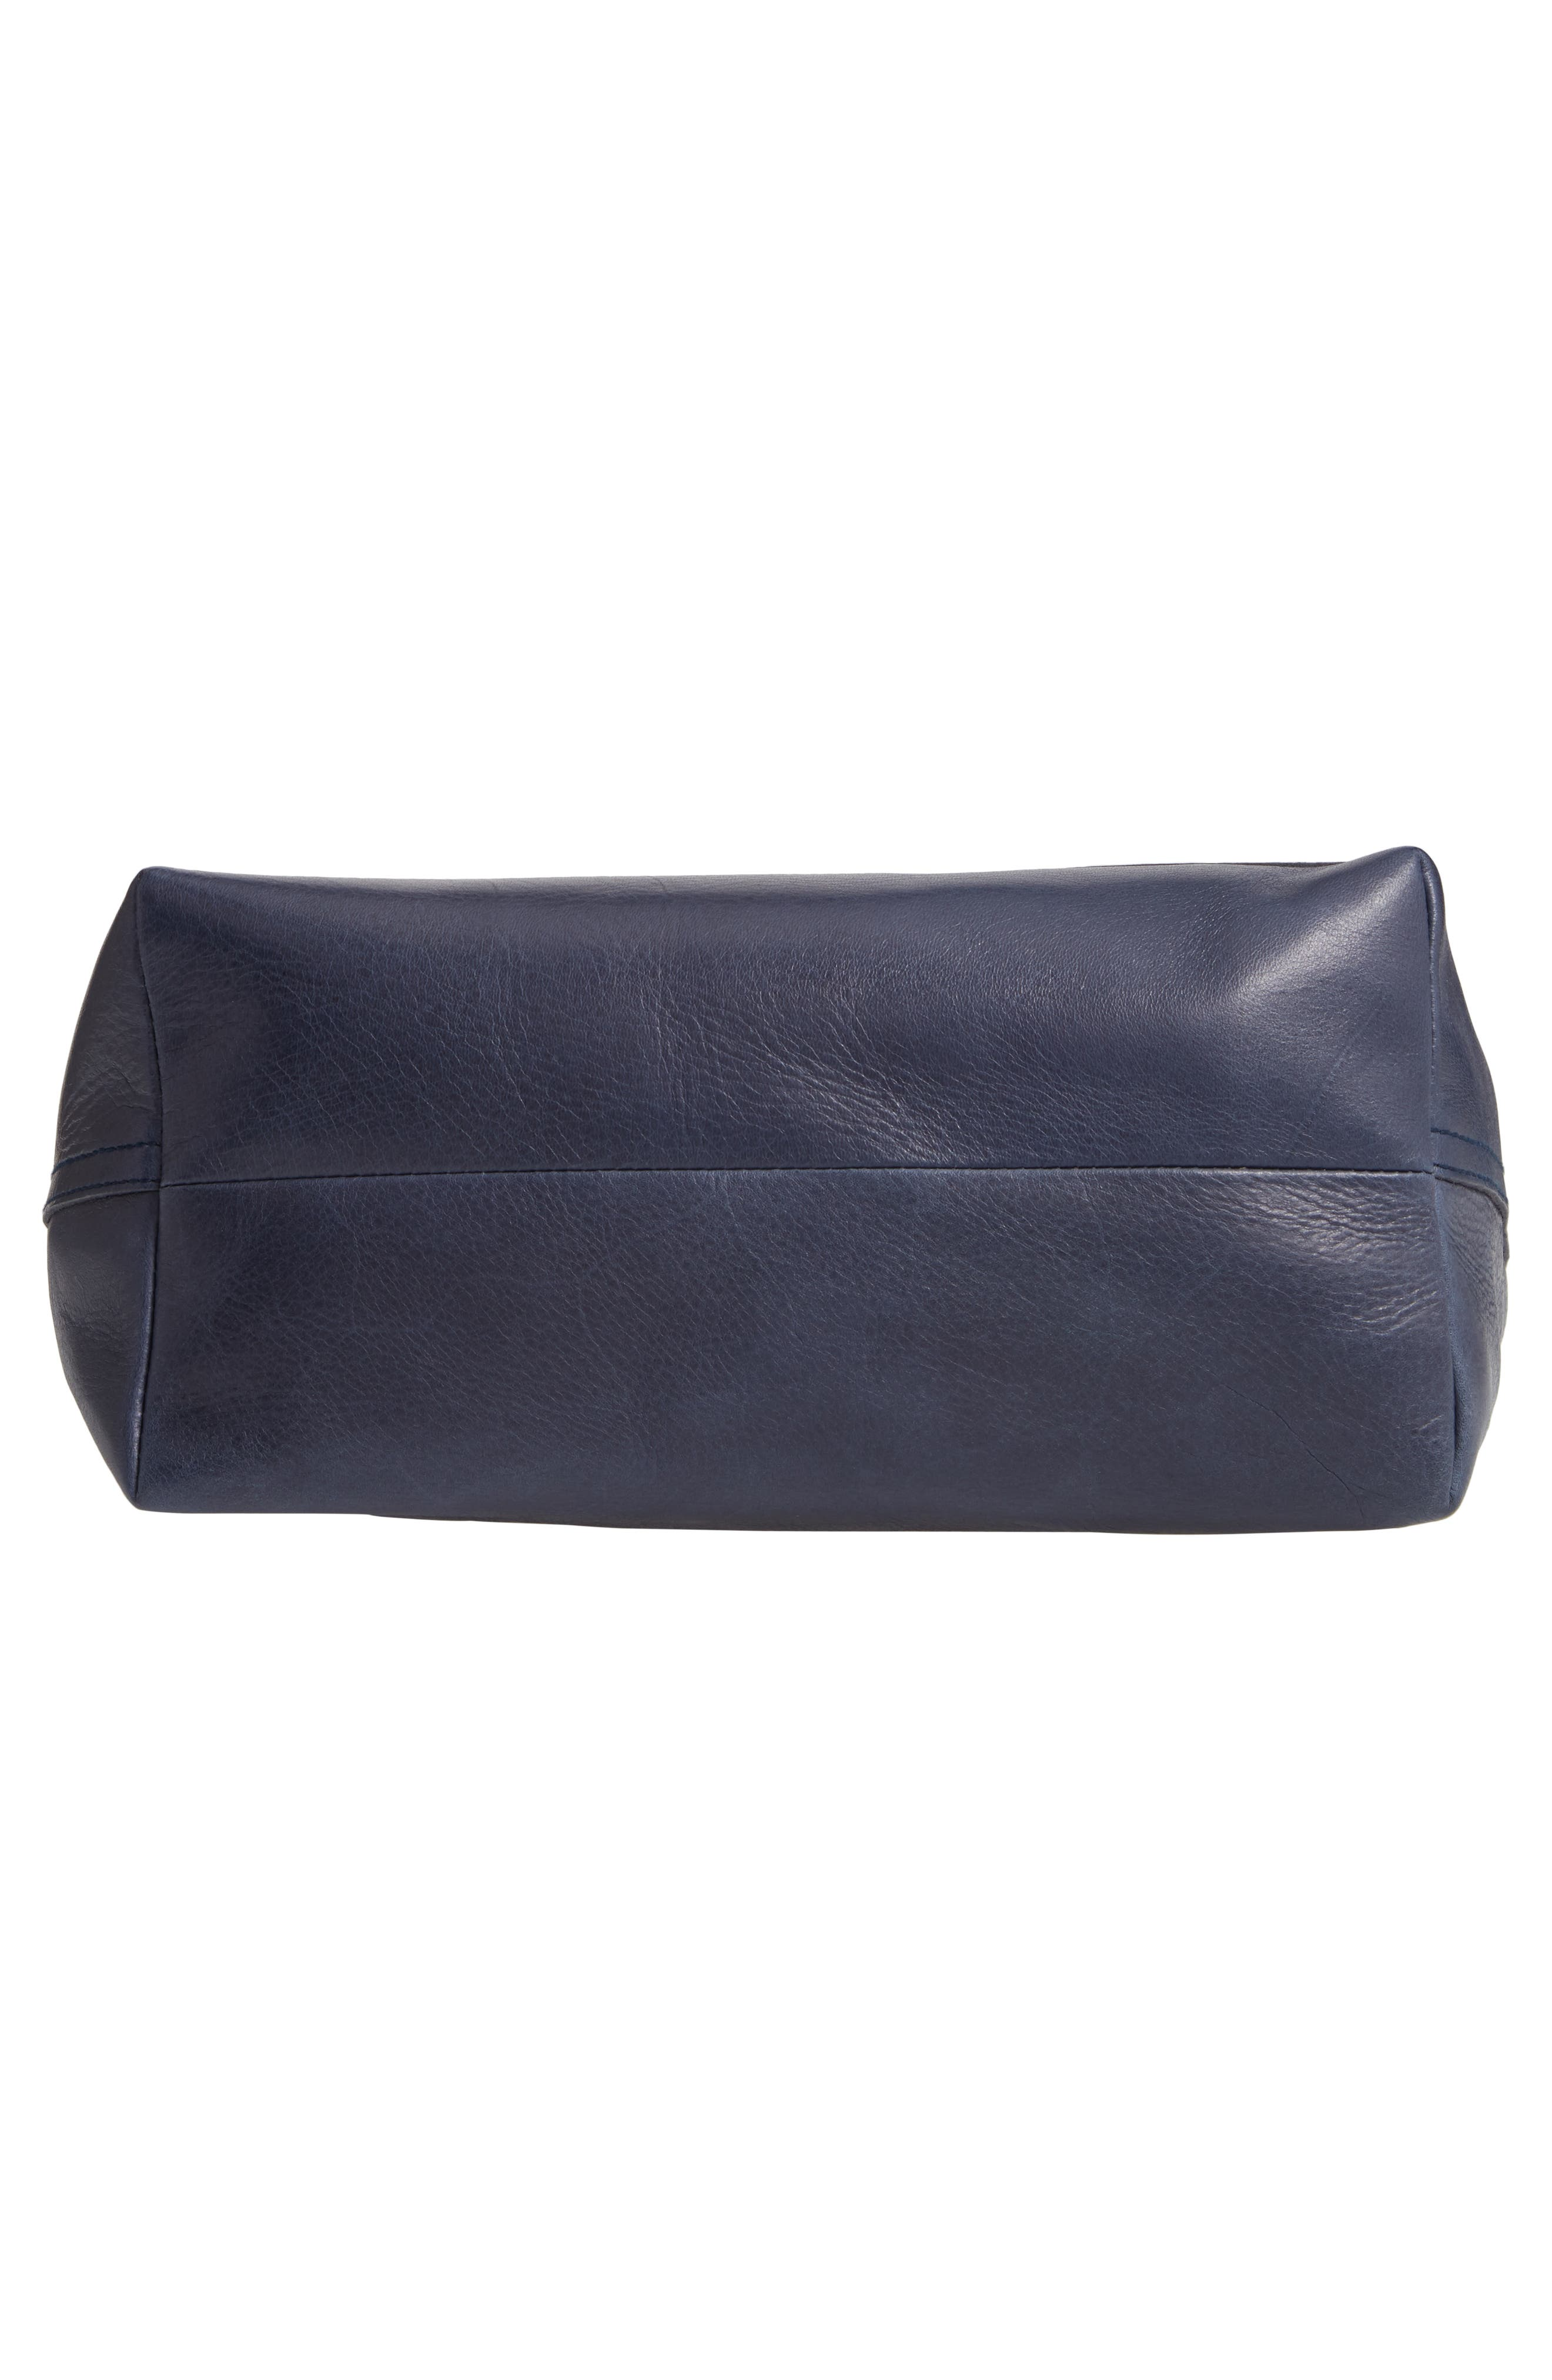 Medium Leather Transport Tote,                             Alternate thumbnail 6, color,                             DEEP NAVY